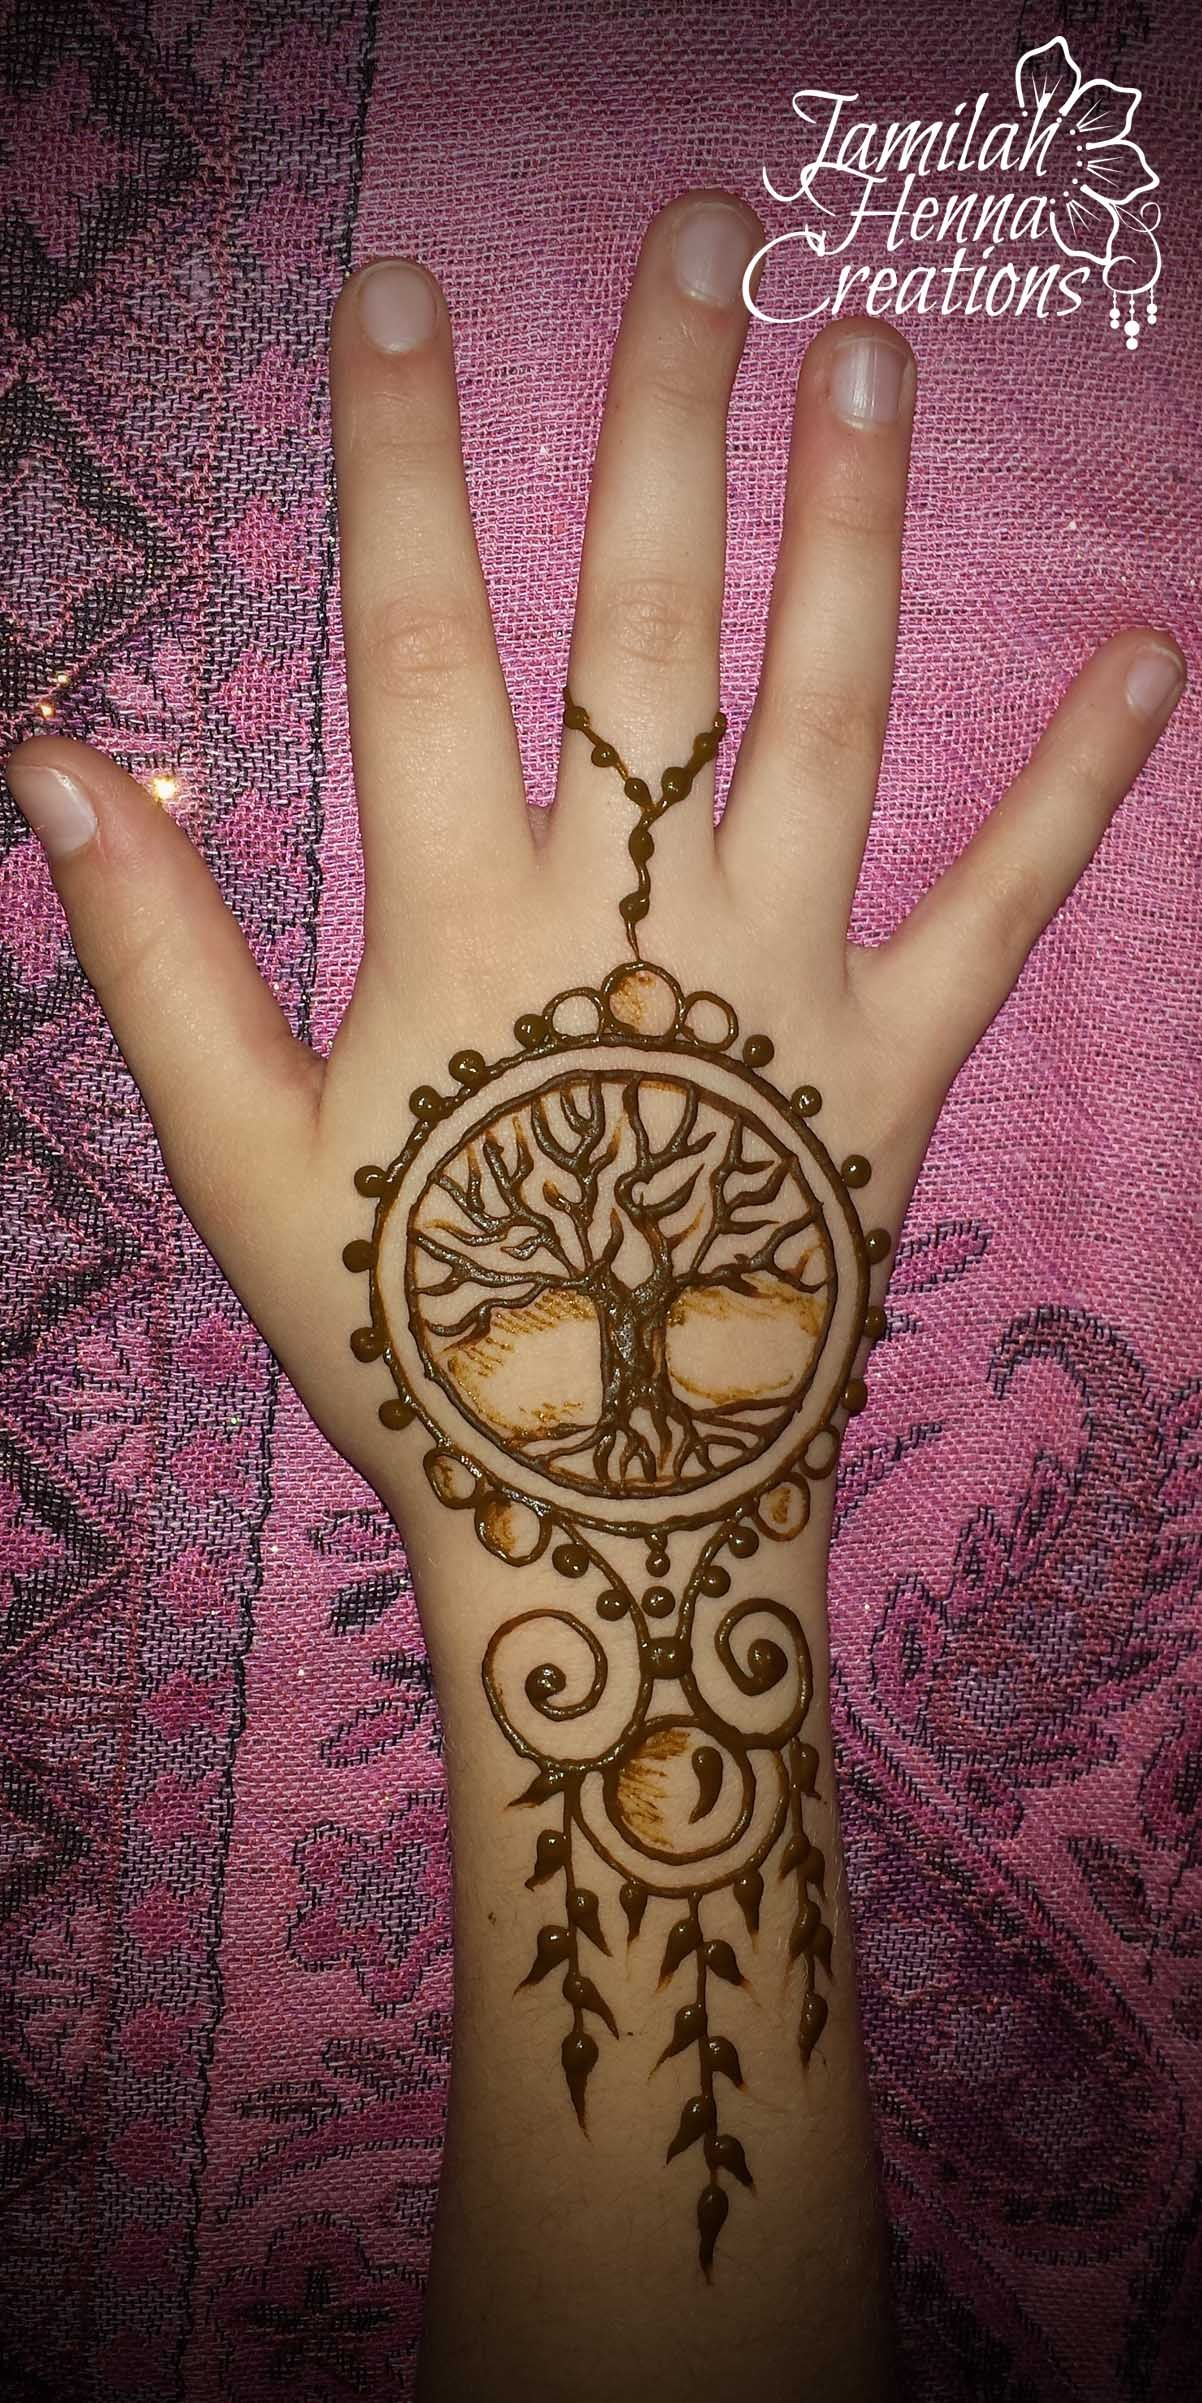 Henna And Tattoo Art: Tree Of Life Henna Jewelry Www.jamilahhennacreations.com